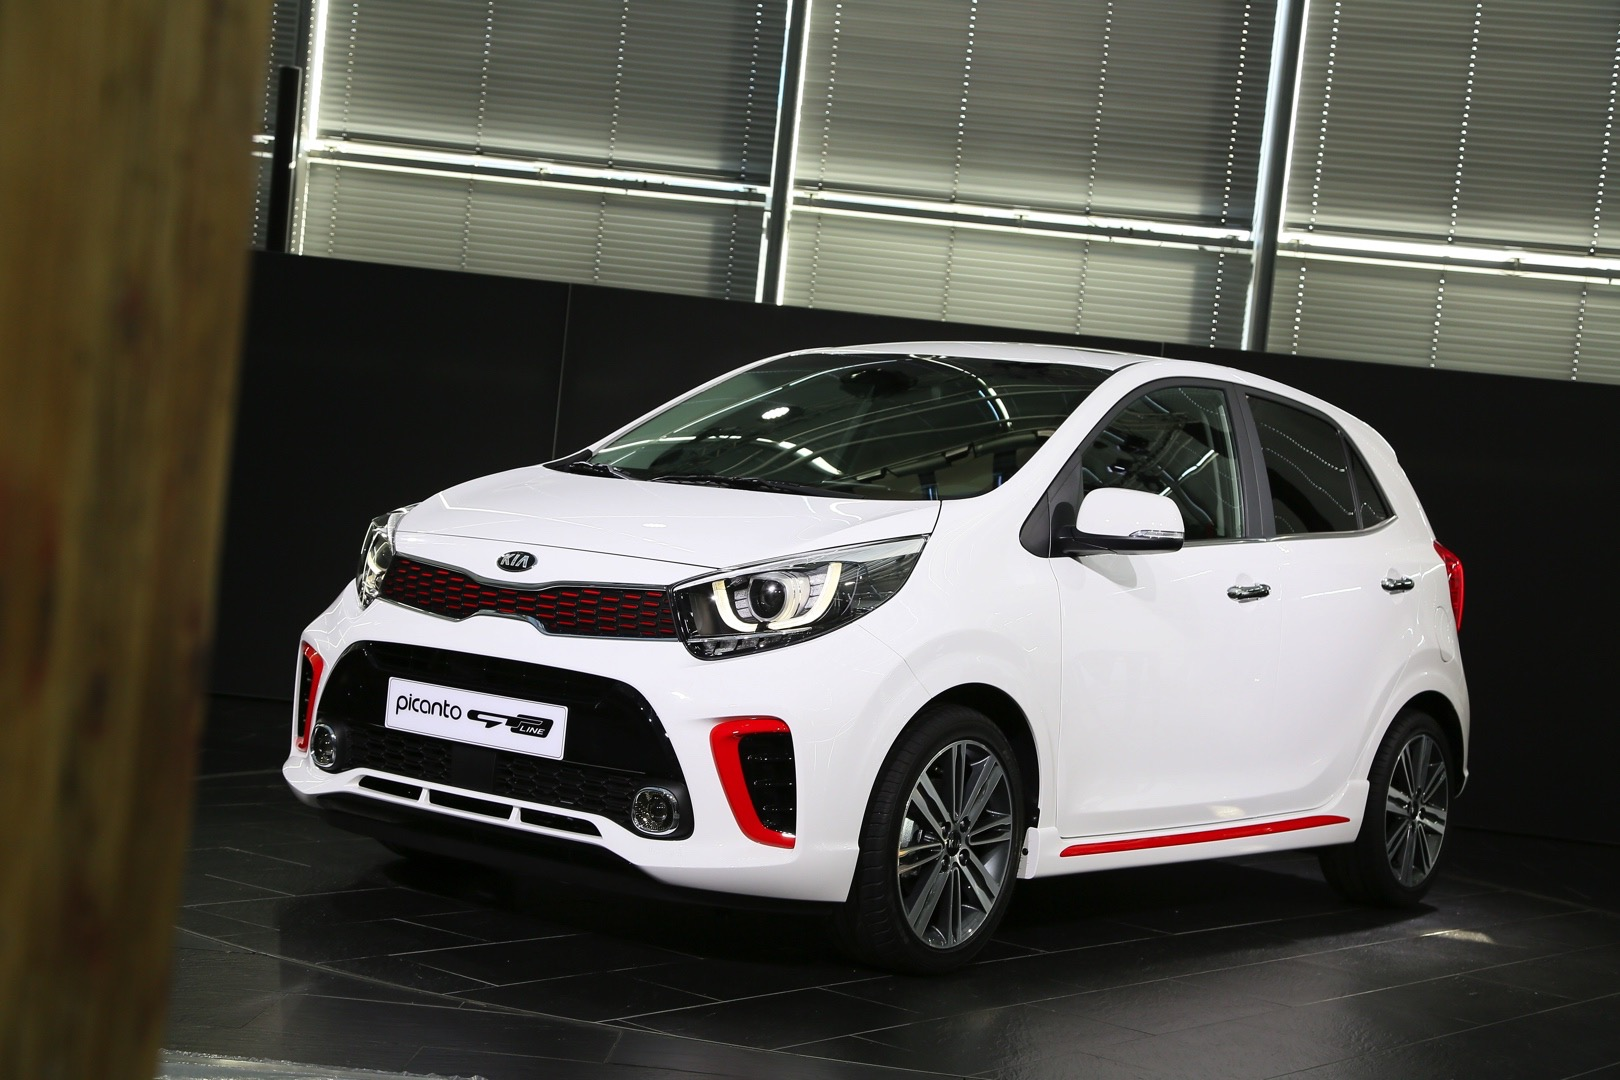 2017 Kia Picanto Specifications Revealed, 1 0 T-GDI Engine Rated At